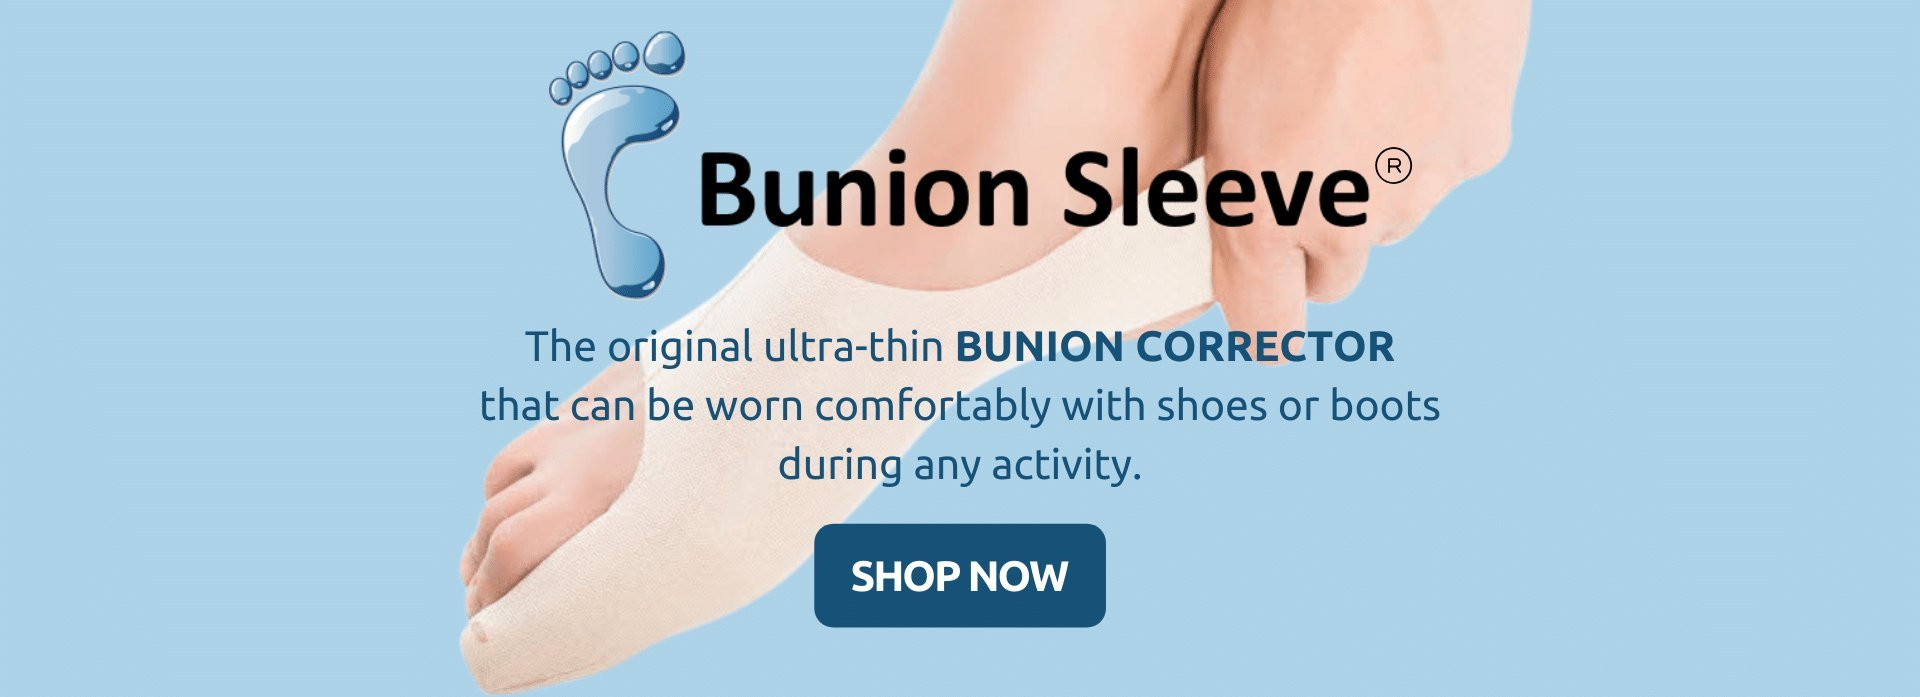 bunion sleeve bunion corrector